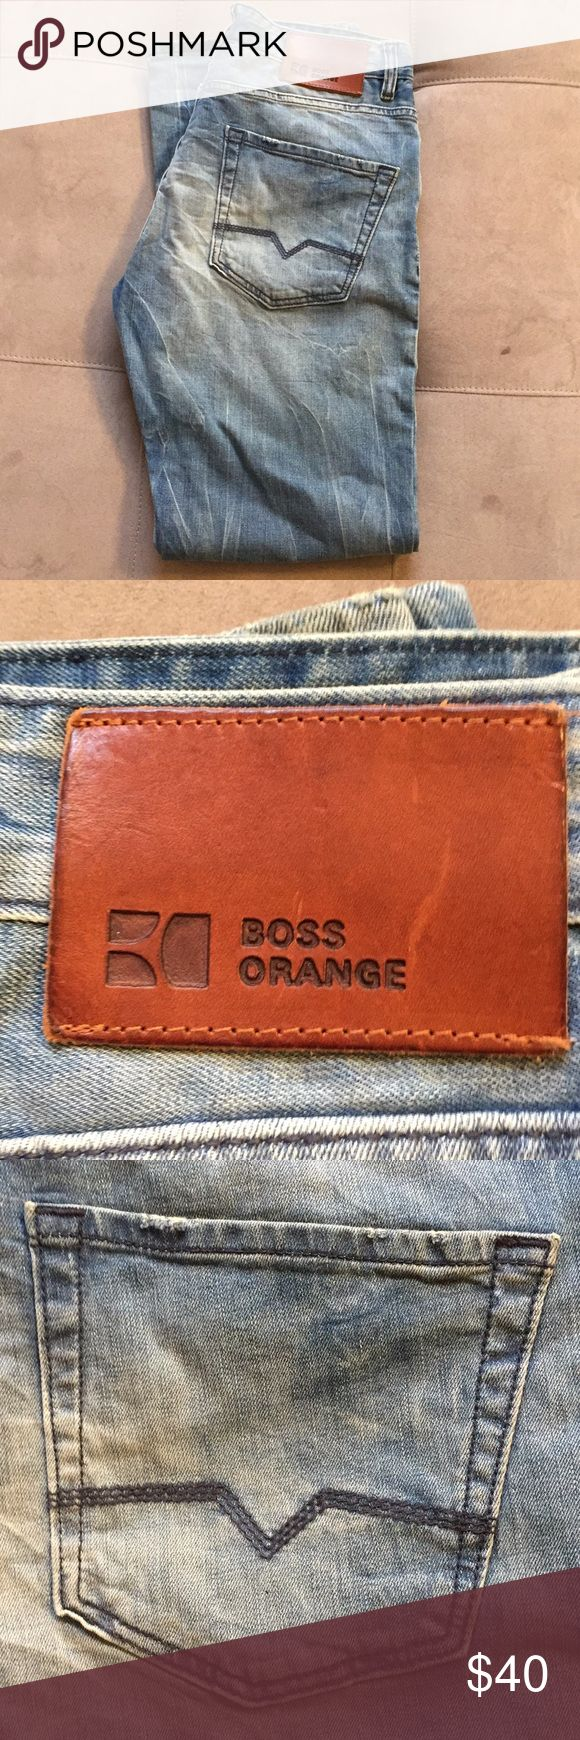 Men's Boss Orange regular cut jeans size 32/30 Great shape with little wear.  Super premium Boss orange label jeans by Hugo Boss.  Size 32/30, fits true to size.  Modern regular cut for a great fit and look.  Very high end jeans for a fraction of the cost. BOSS ORANGE Jeans